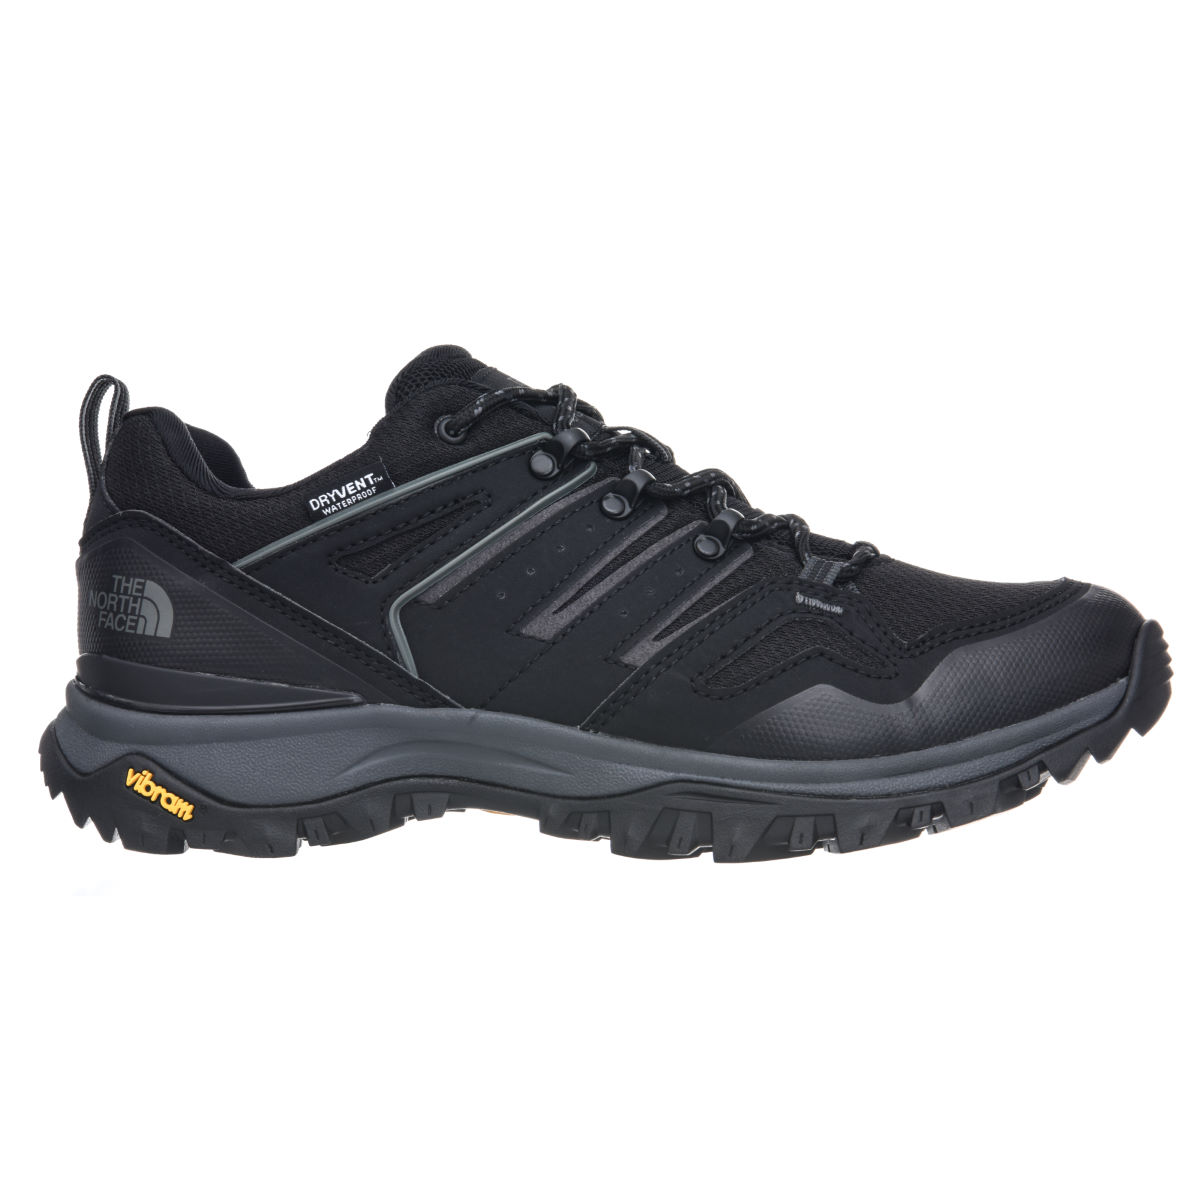 The North Face The North Face Hedgehog Fastpack II Waterproof Shoes   Shoes